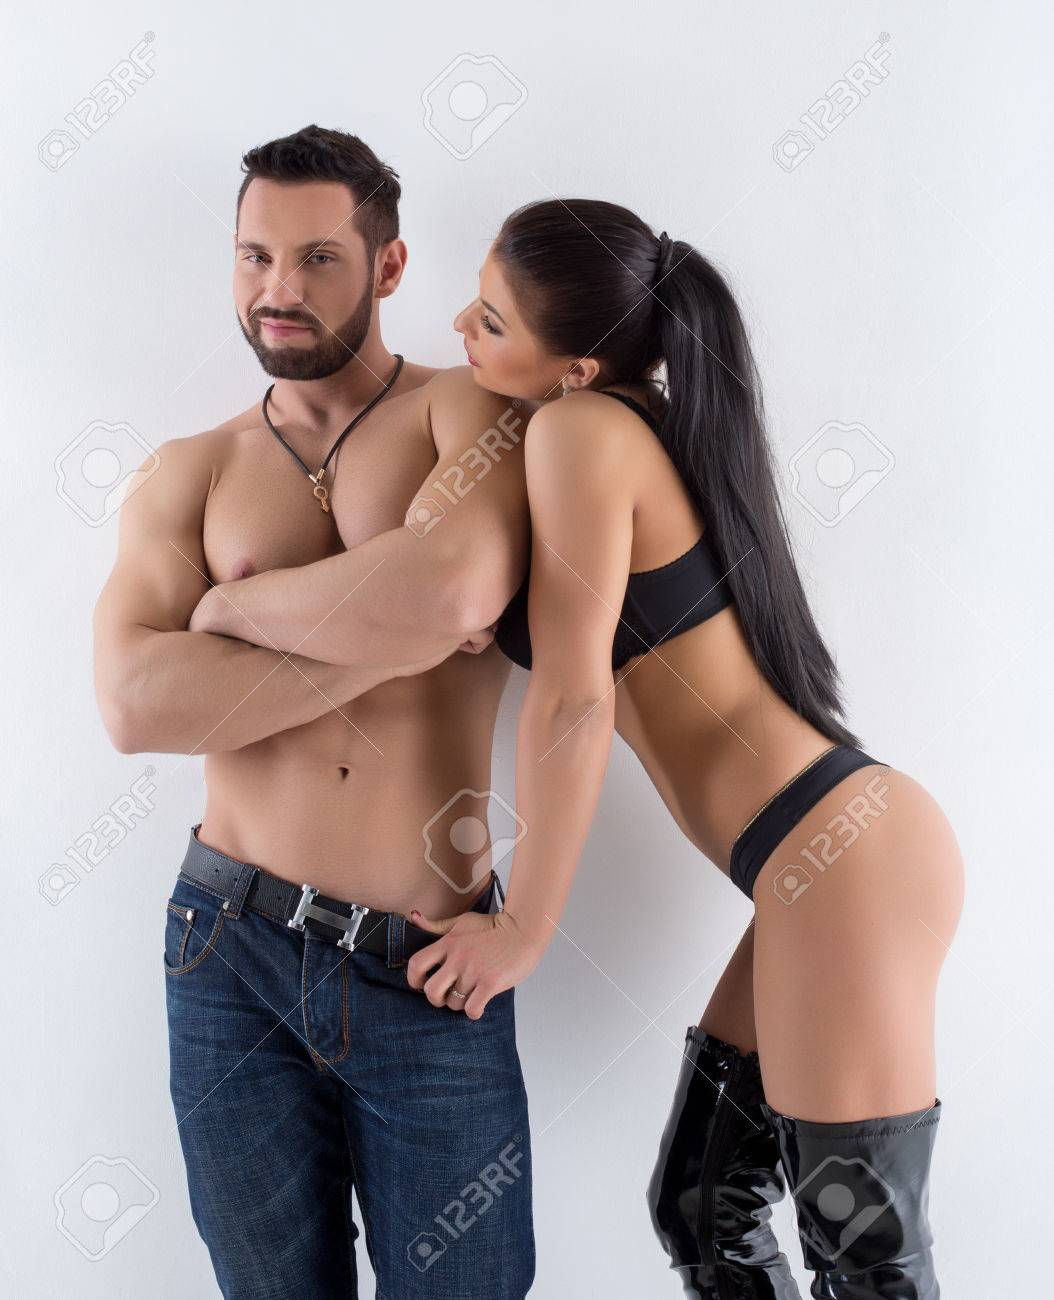 Hot Brunette Flirts With Sexy Muscular Man At Camera Stock Photo Picture And Royalty Free Image Image 38252114